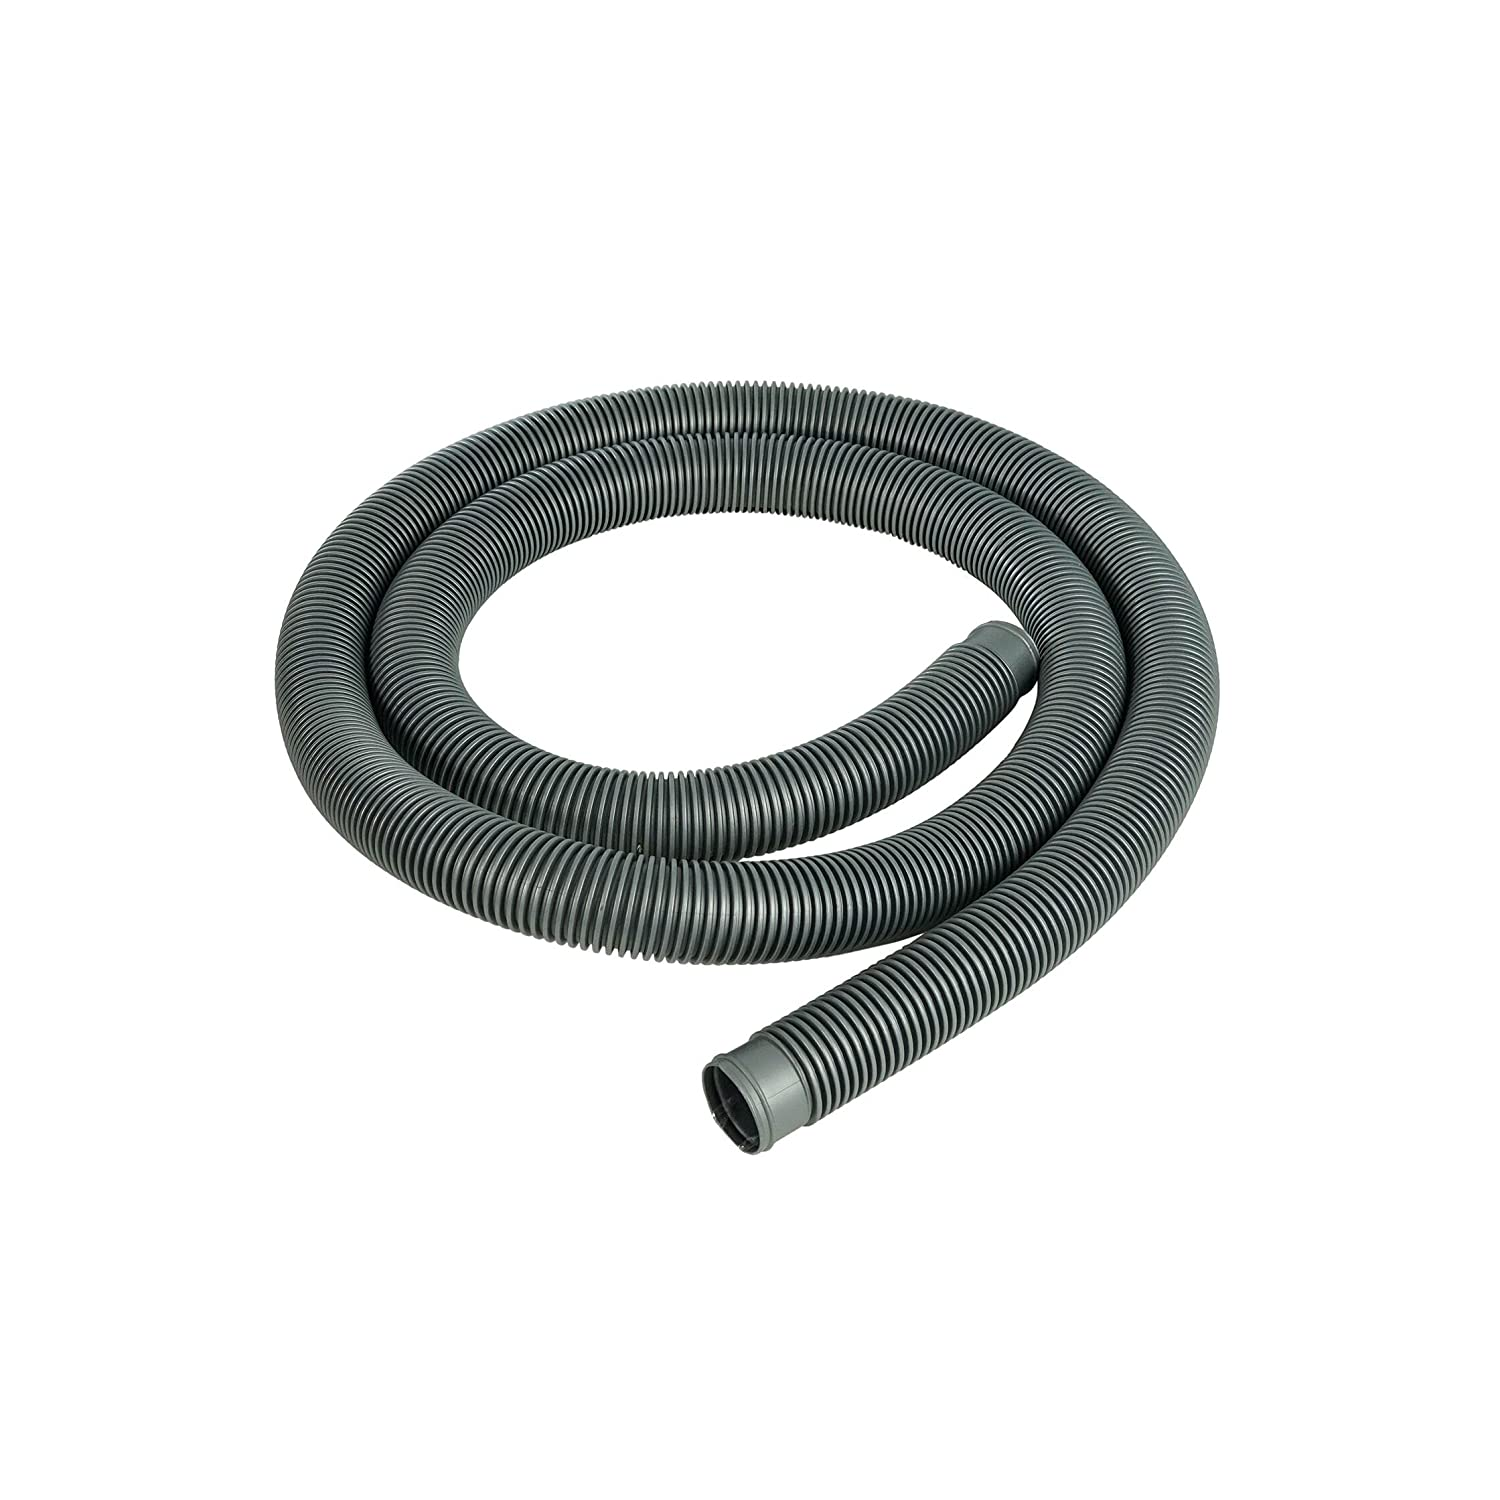 Max All stores are sold 78% OFF Heavyy-Duty Silver Pool Filter Connect x - 9FT Hose 1.5